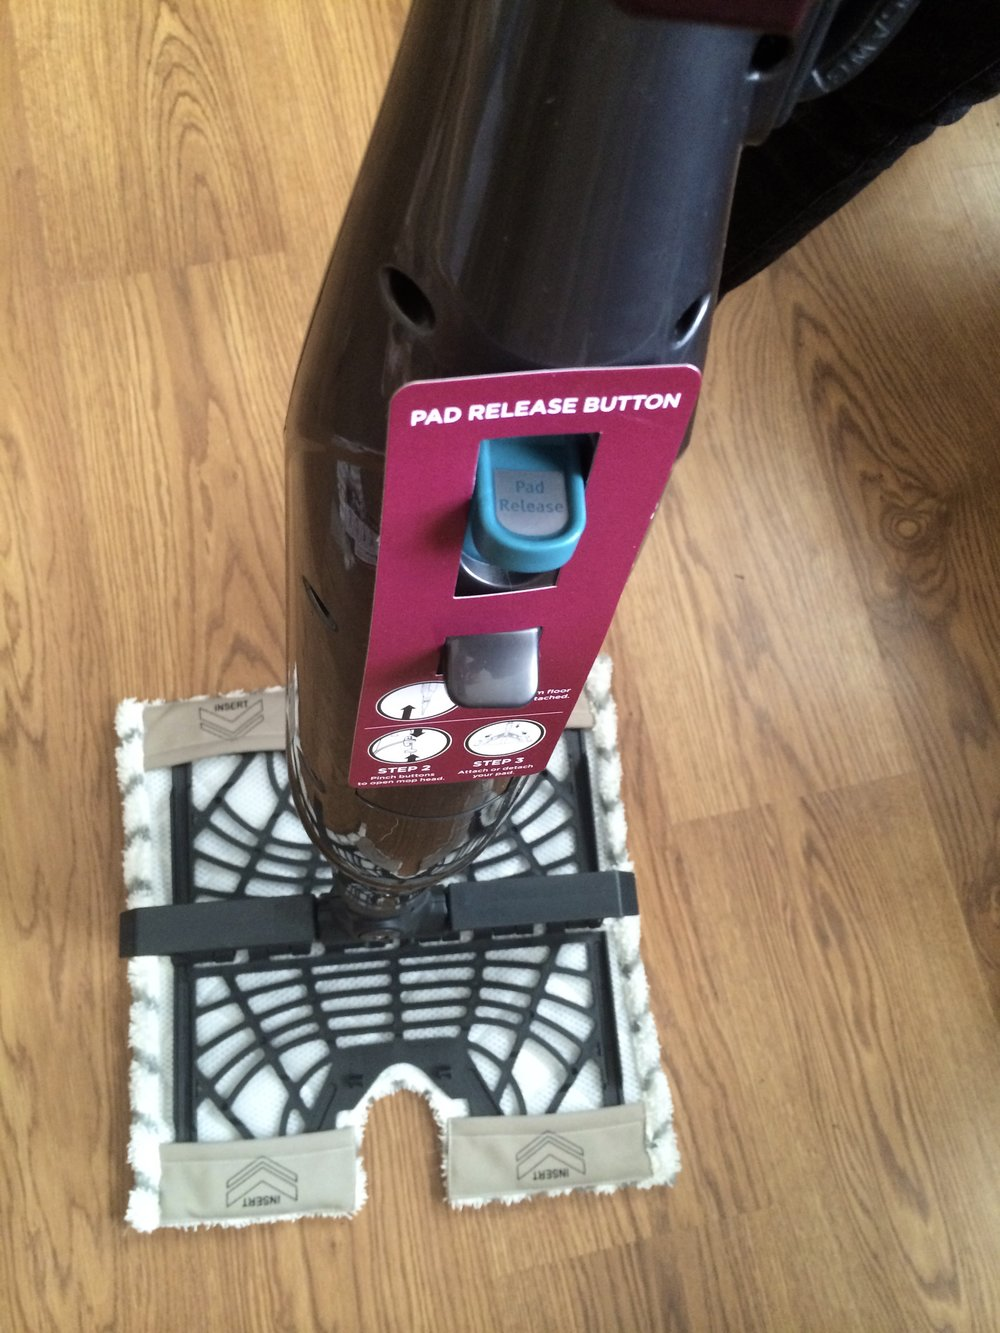 Shark Genius Hardwood Floor Cleaning System Review - whatthegirlssay.com